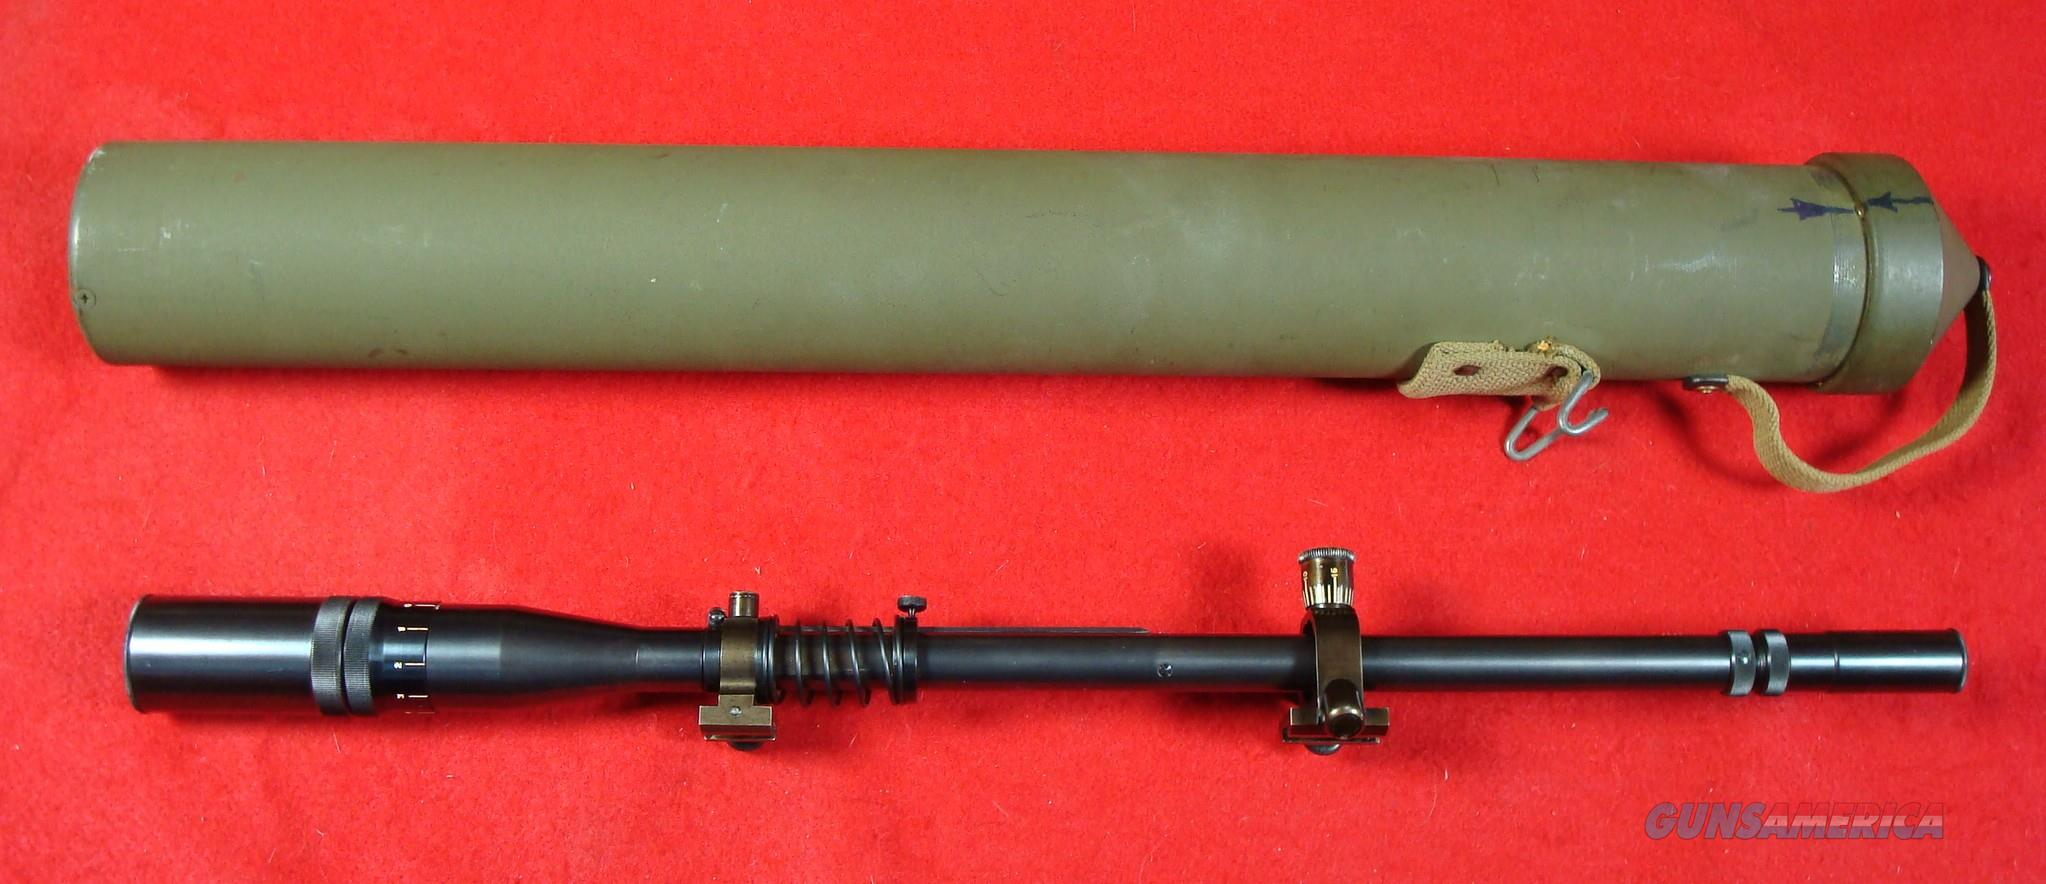 World War II U.S.M.C. Unertl Sniper Scope, Excellent Condition  Non-Guns > Scopes/Mounts/Rings & Optics > Rifle Scopes > Fixed Focal Length